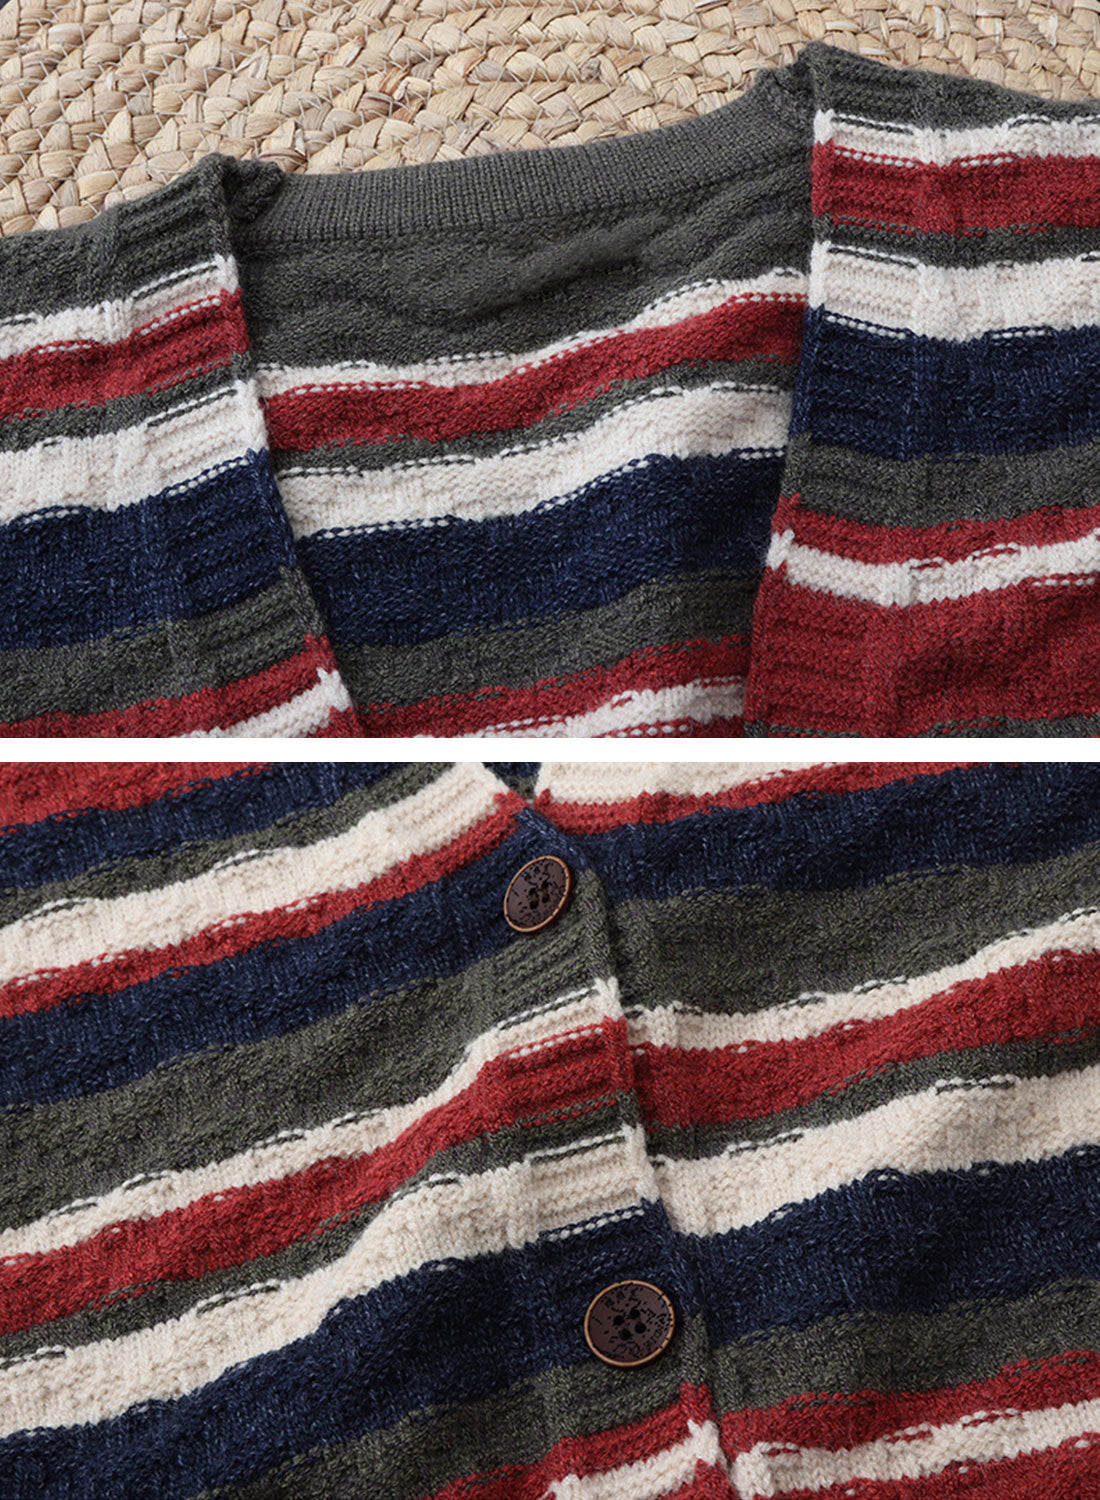 Color Block Striped Long Cardigan Sweater Details 1